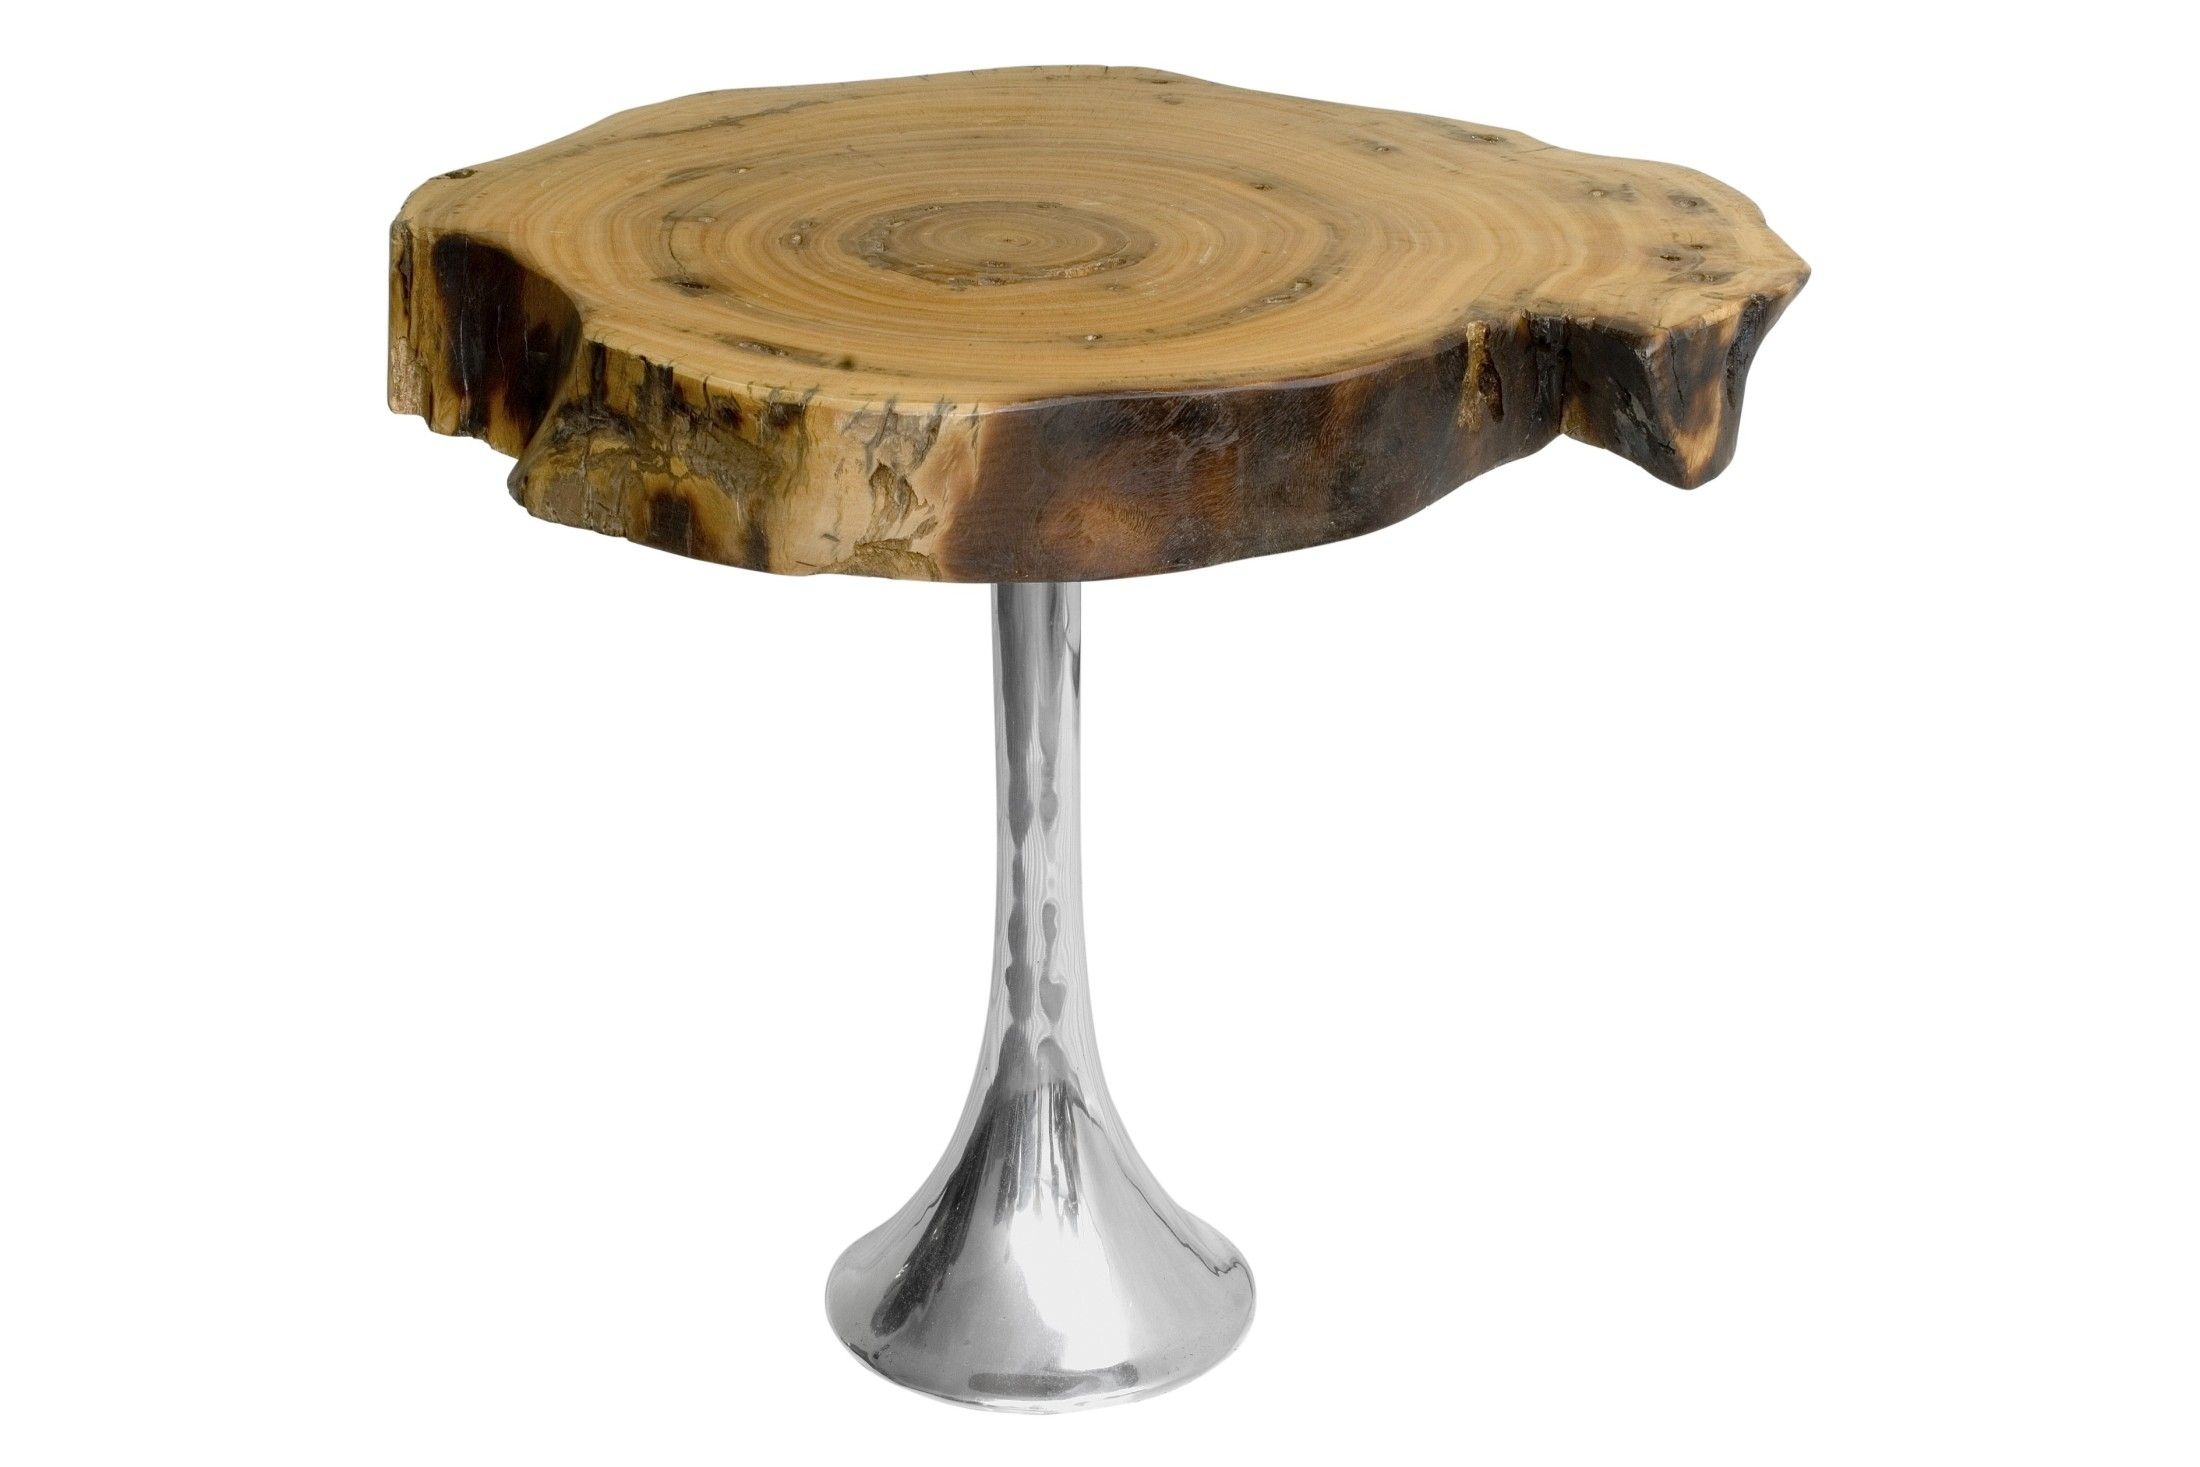 Contemporary side table wooden in reclaimed material BOLACHA